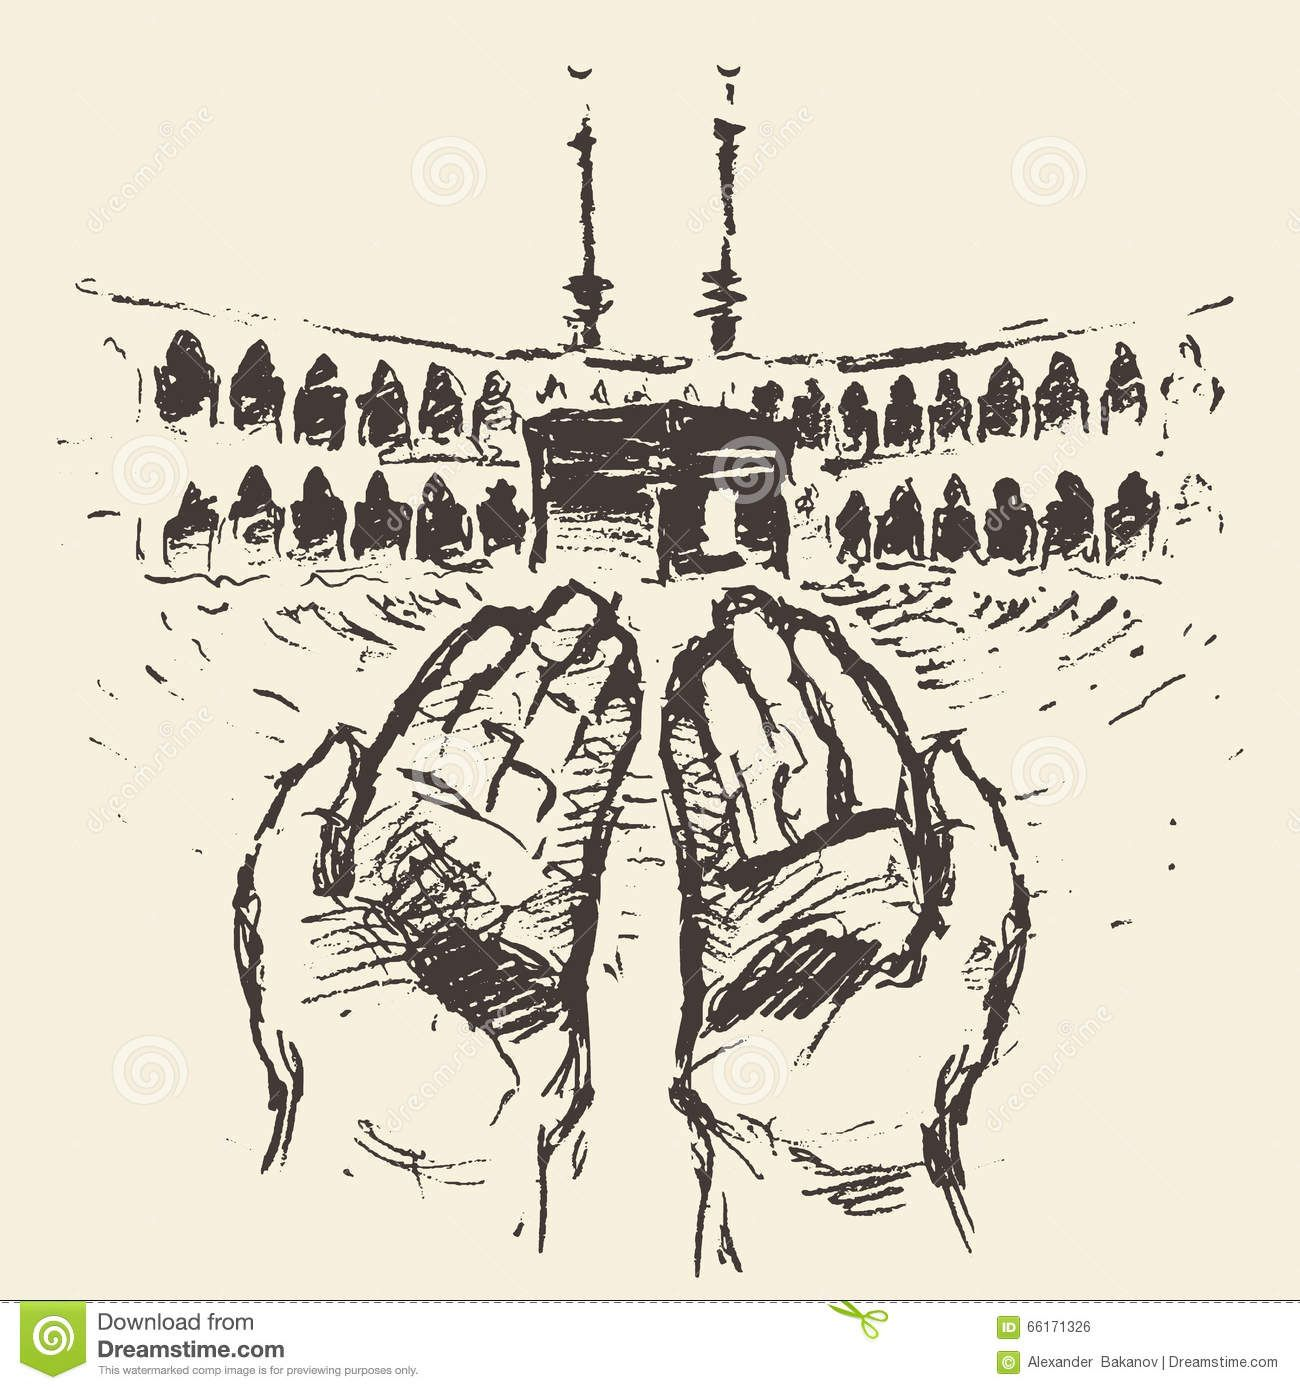 رسم برج المملكة Holy Kaaba Mecca Saudi Arabia Praying Hands Drawn Stock How To Draw Hands Islamic Caligraphy Art Mosque Art